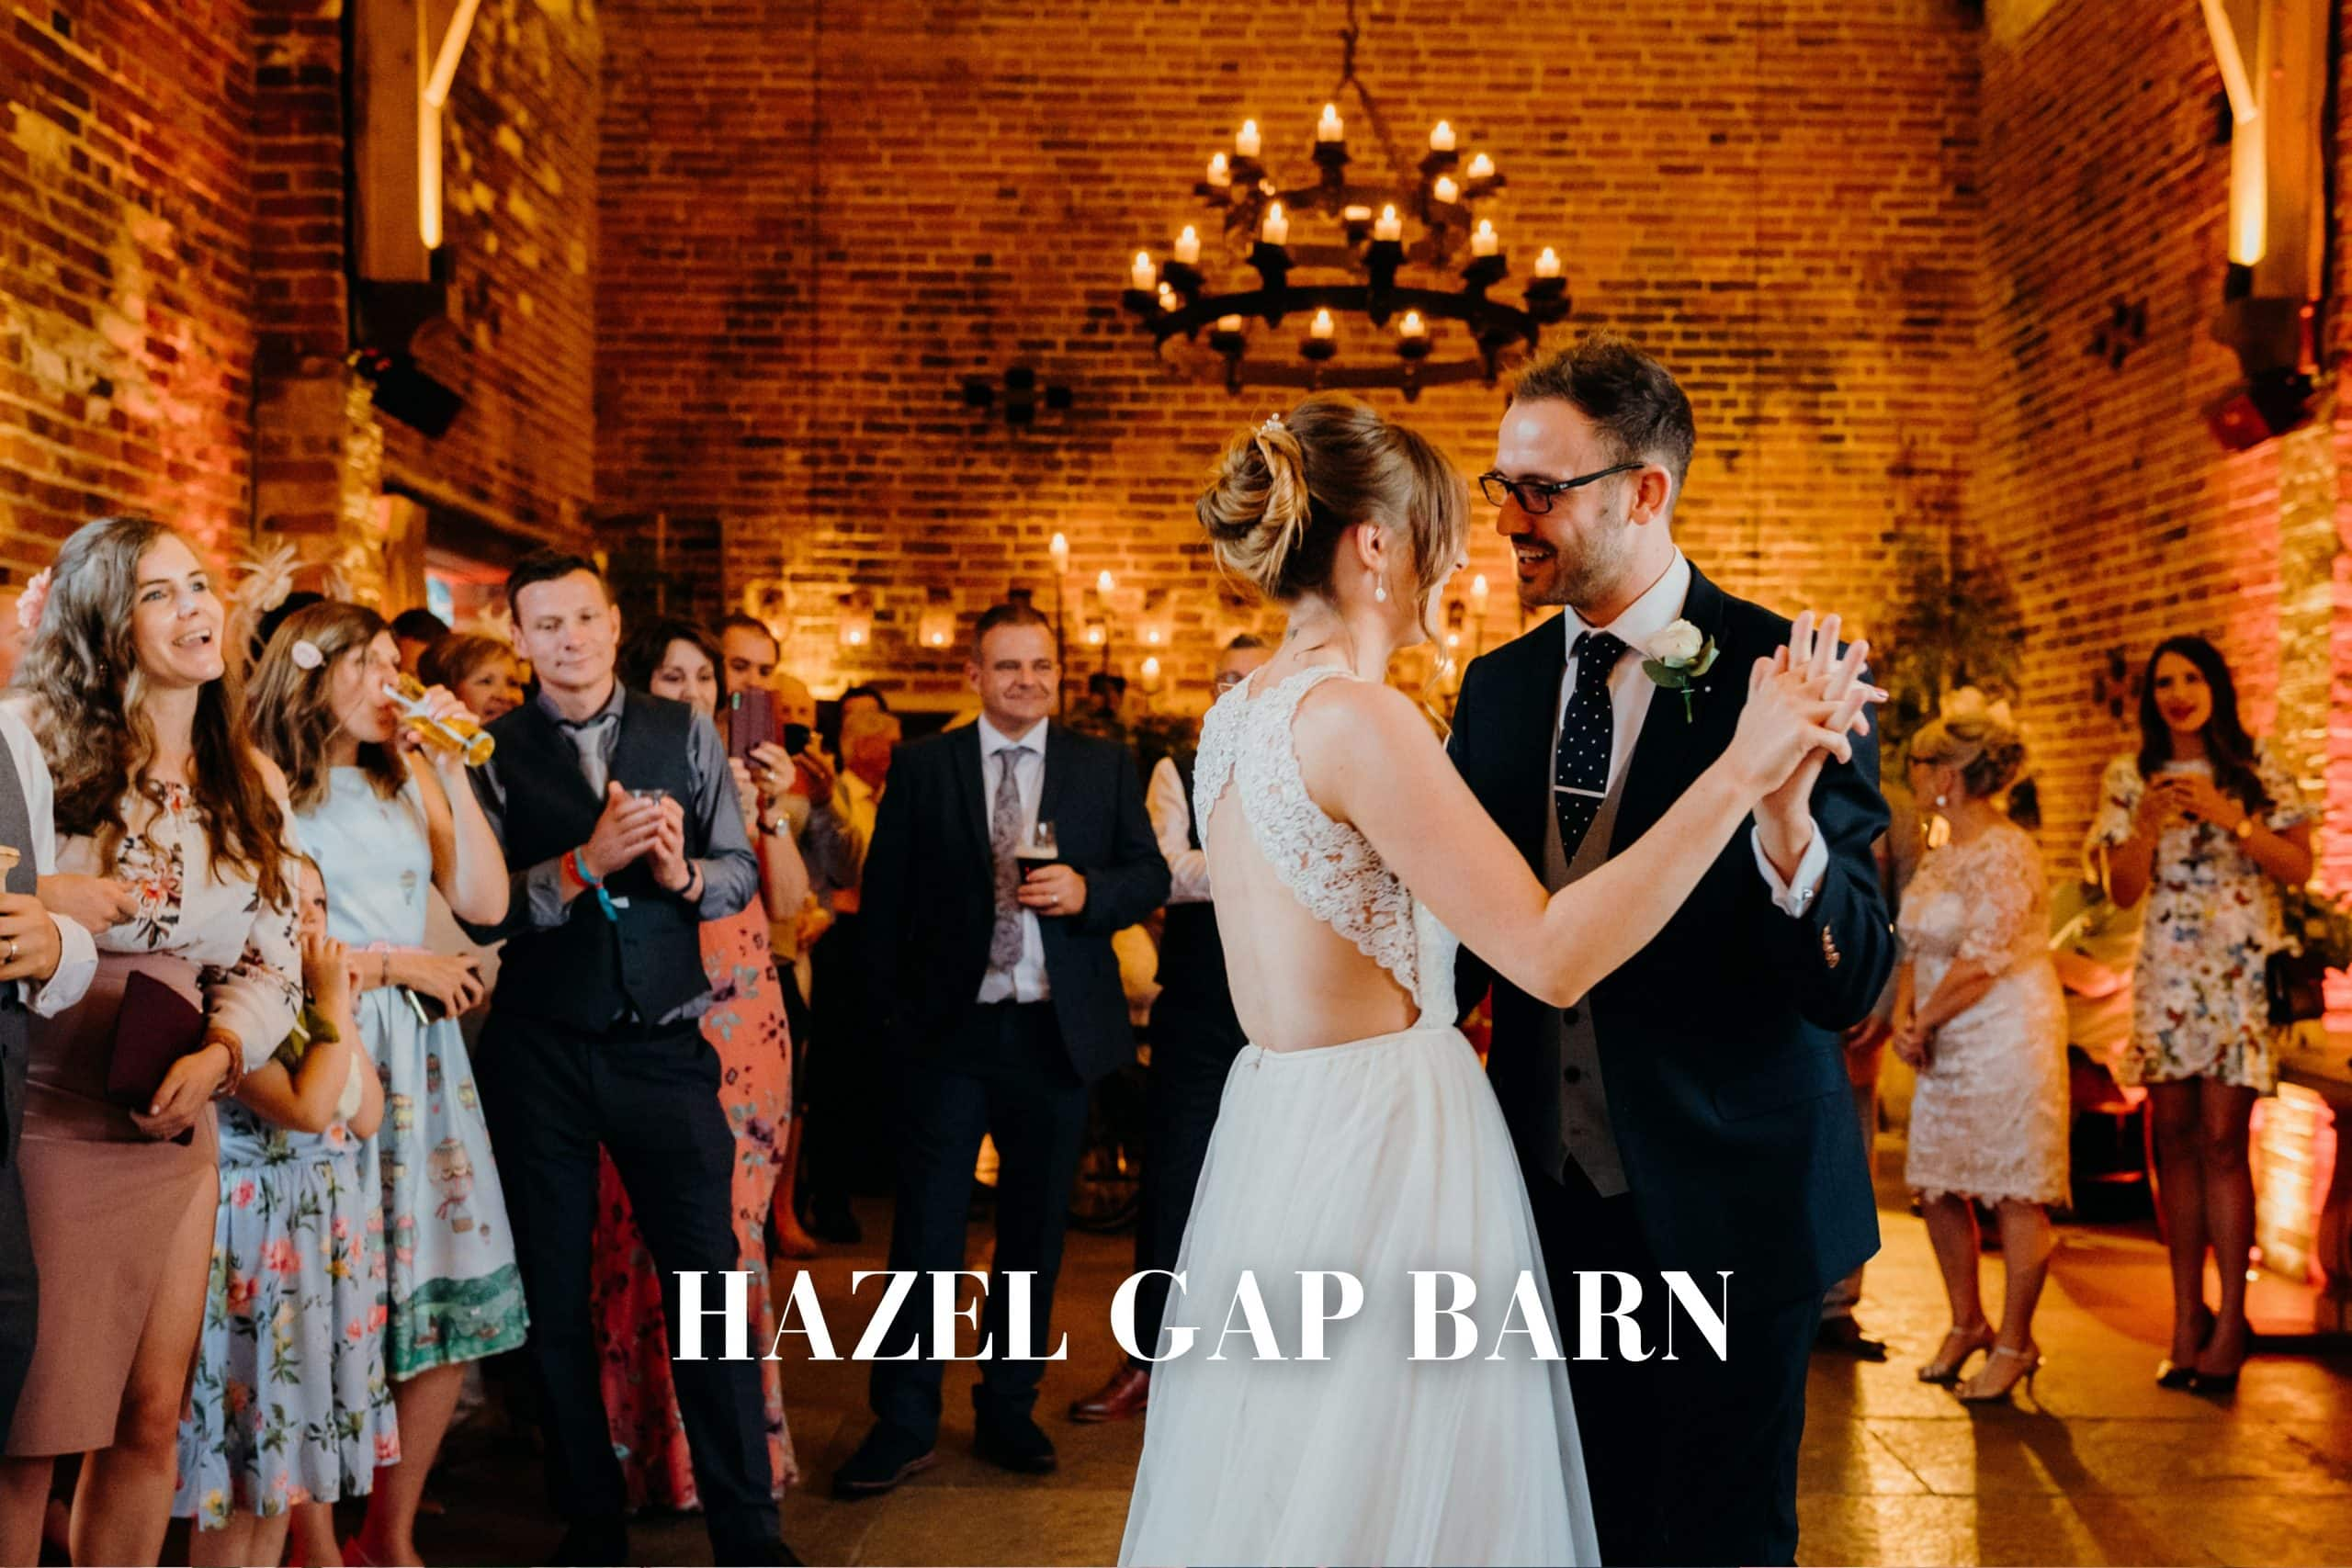 Wedding photography At Hazel Gap Barn - bride and groom enjoy the first dance with their family and friends